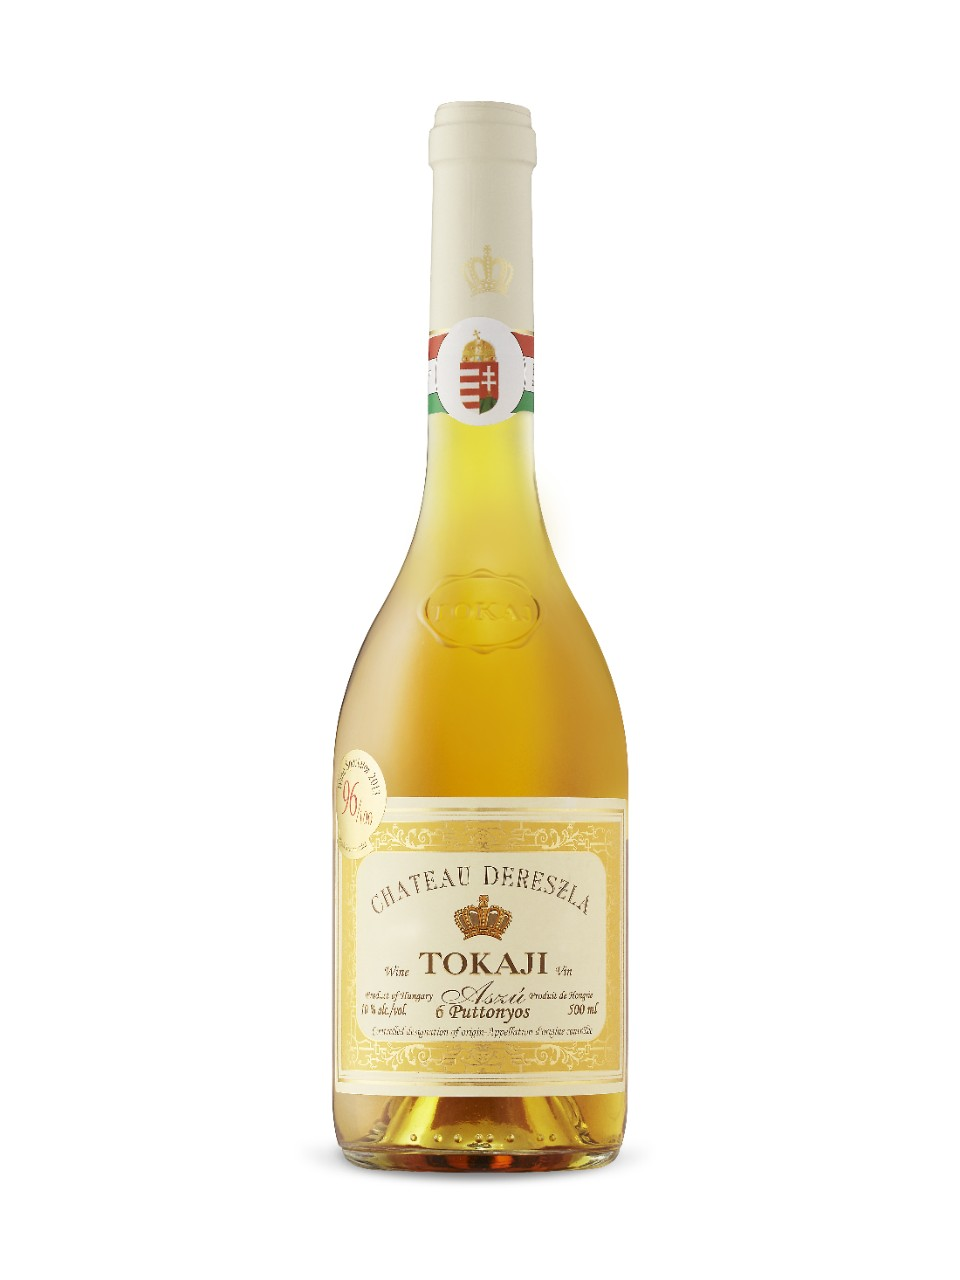 Image for Dereszla Tokaji Aszu 6P 2008 from LCBO